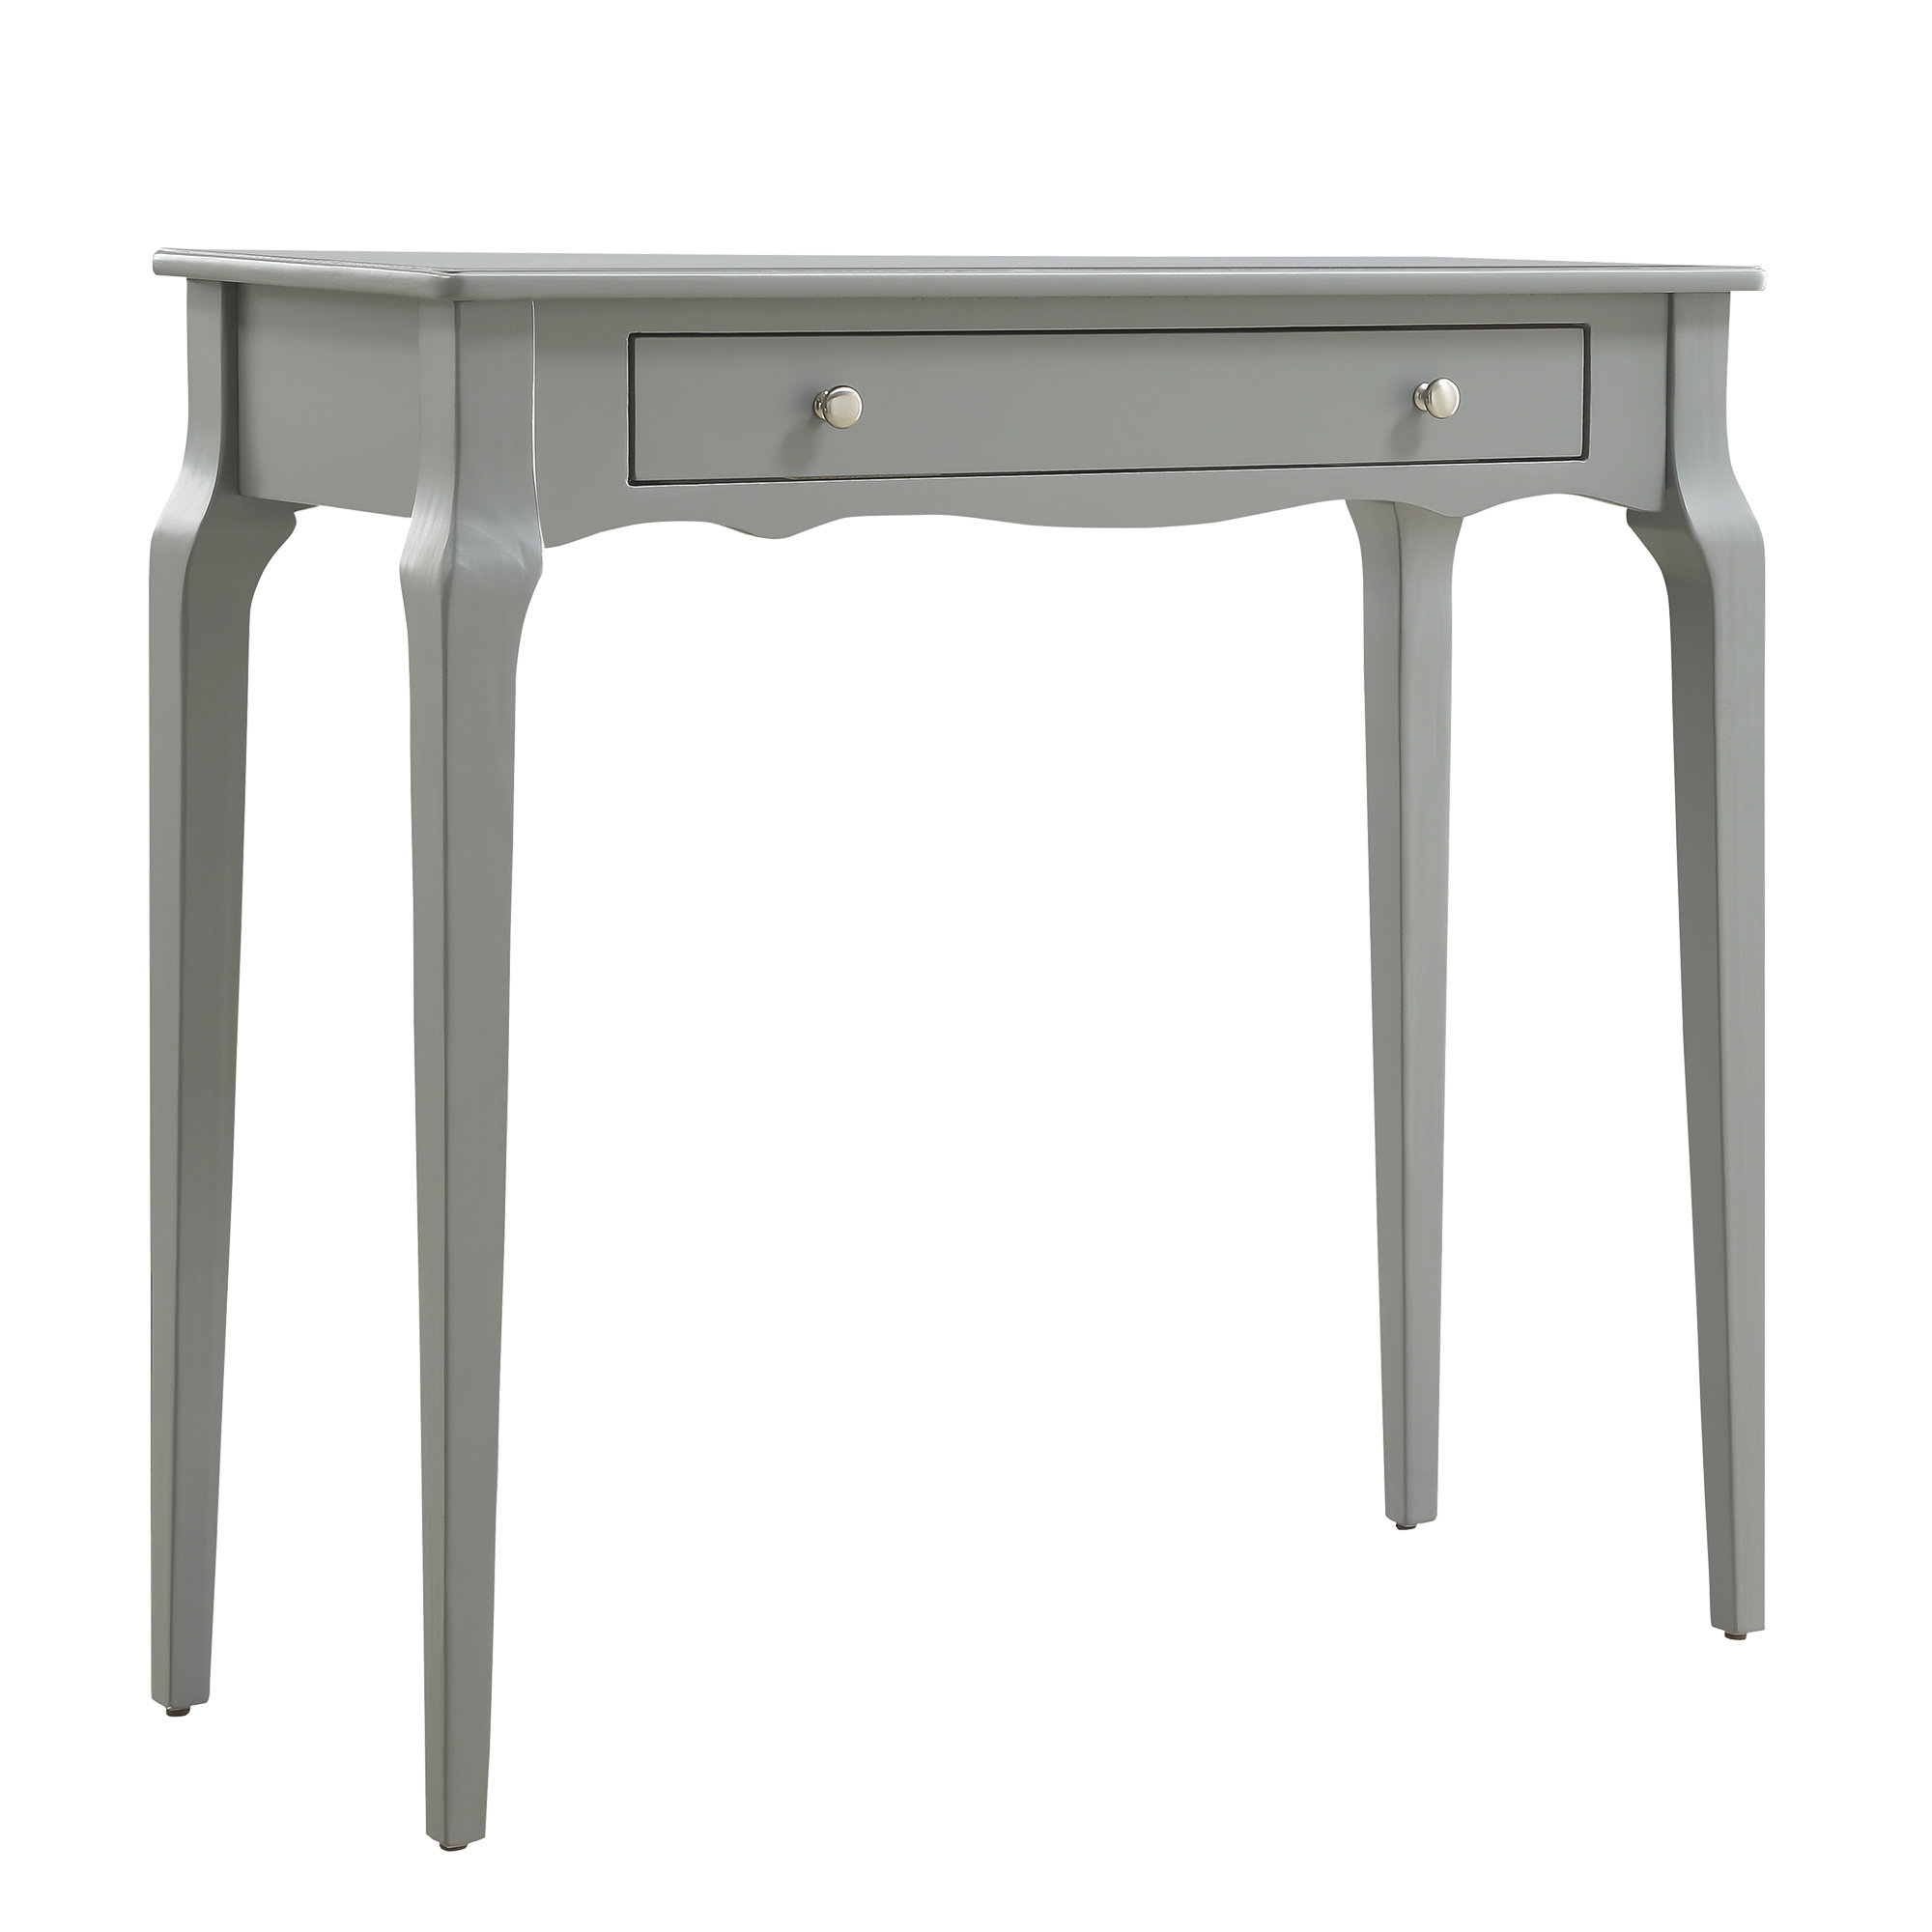 grey wash console table fabius whitewash accent quickview wedding linens large outdoor dining ergonomic furniture small swivel chair crystal lamp base space saver clearance